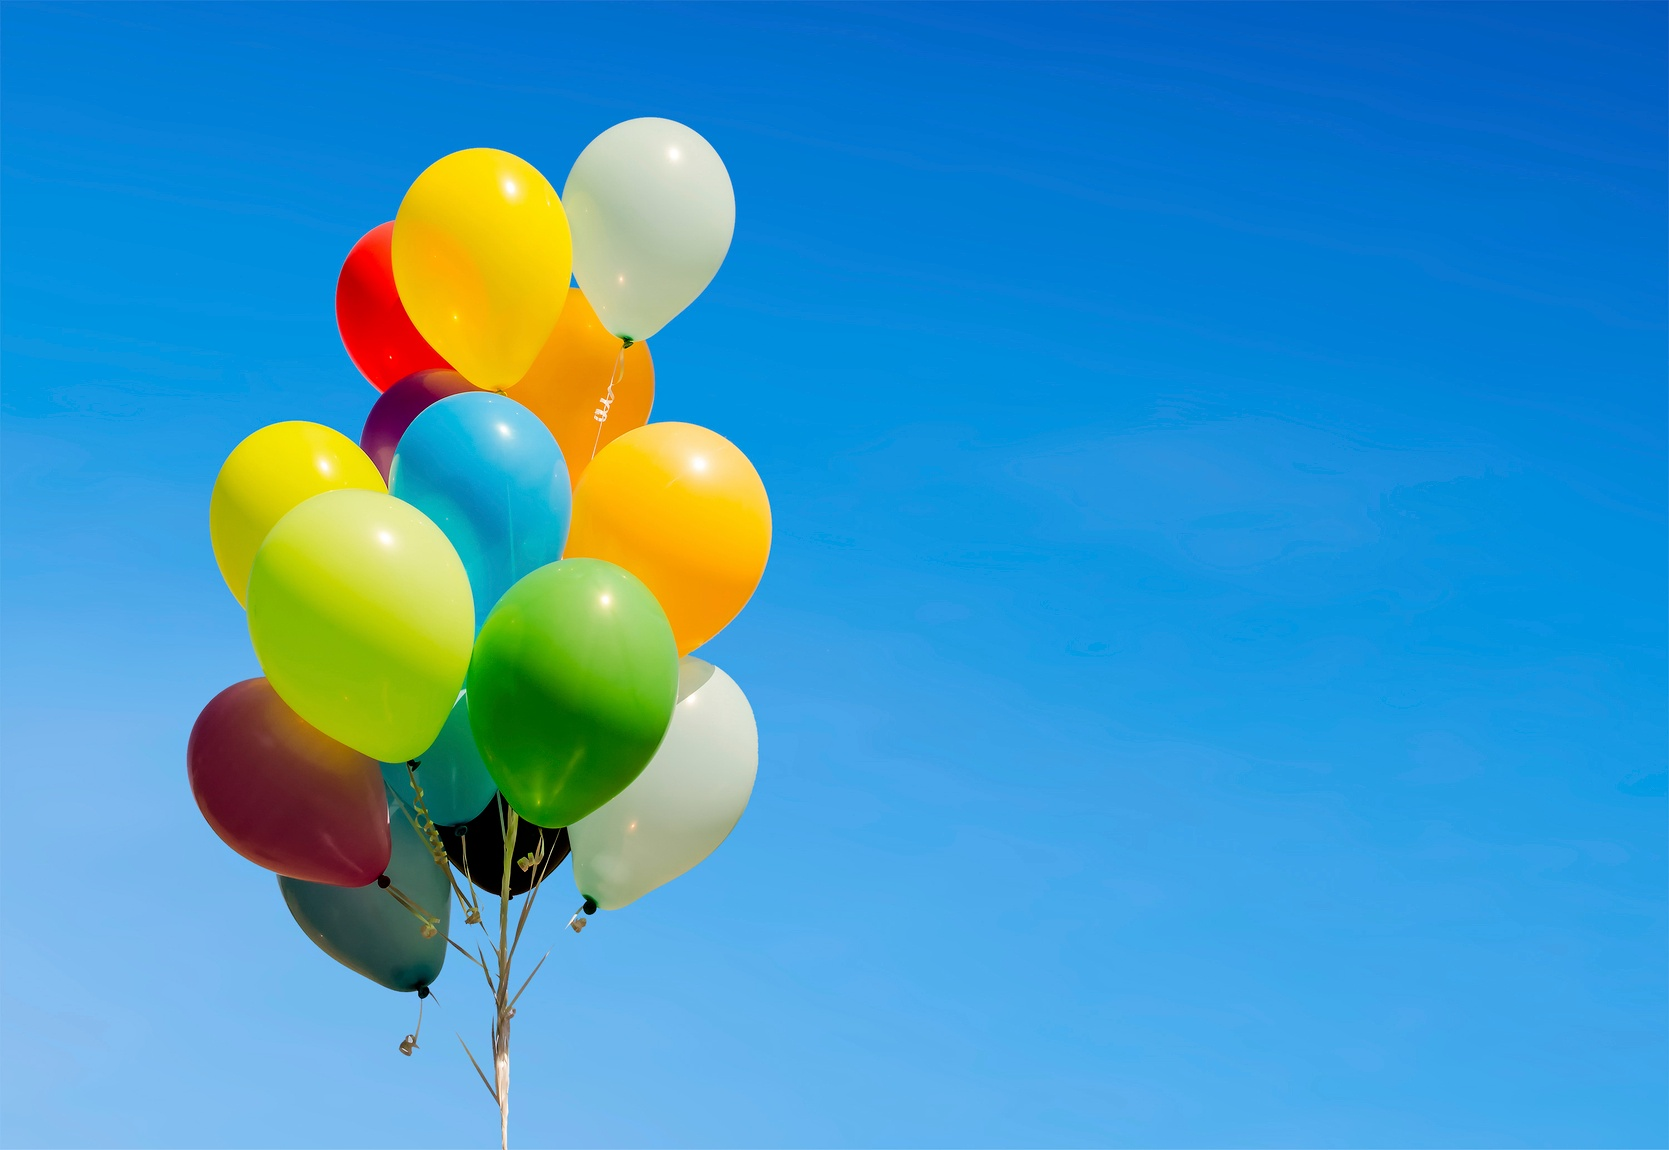 4 fun facts you need to know about balloons and making them lift (hint: It's all about the gases!)